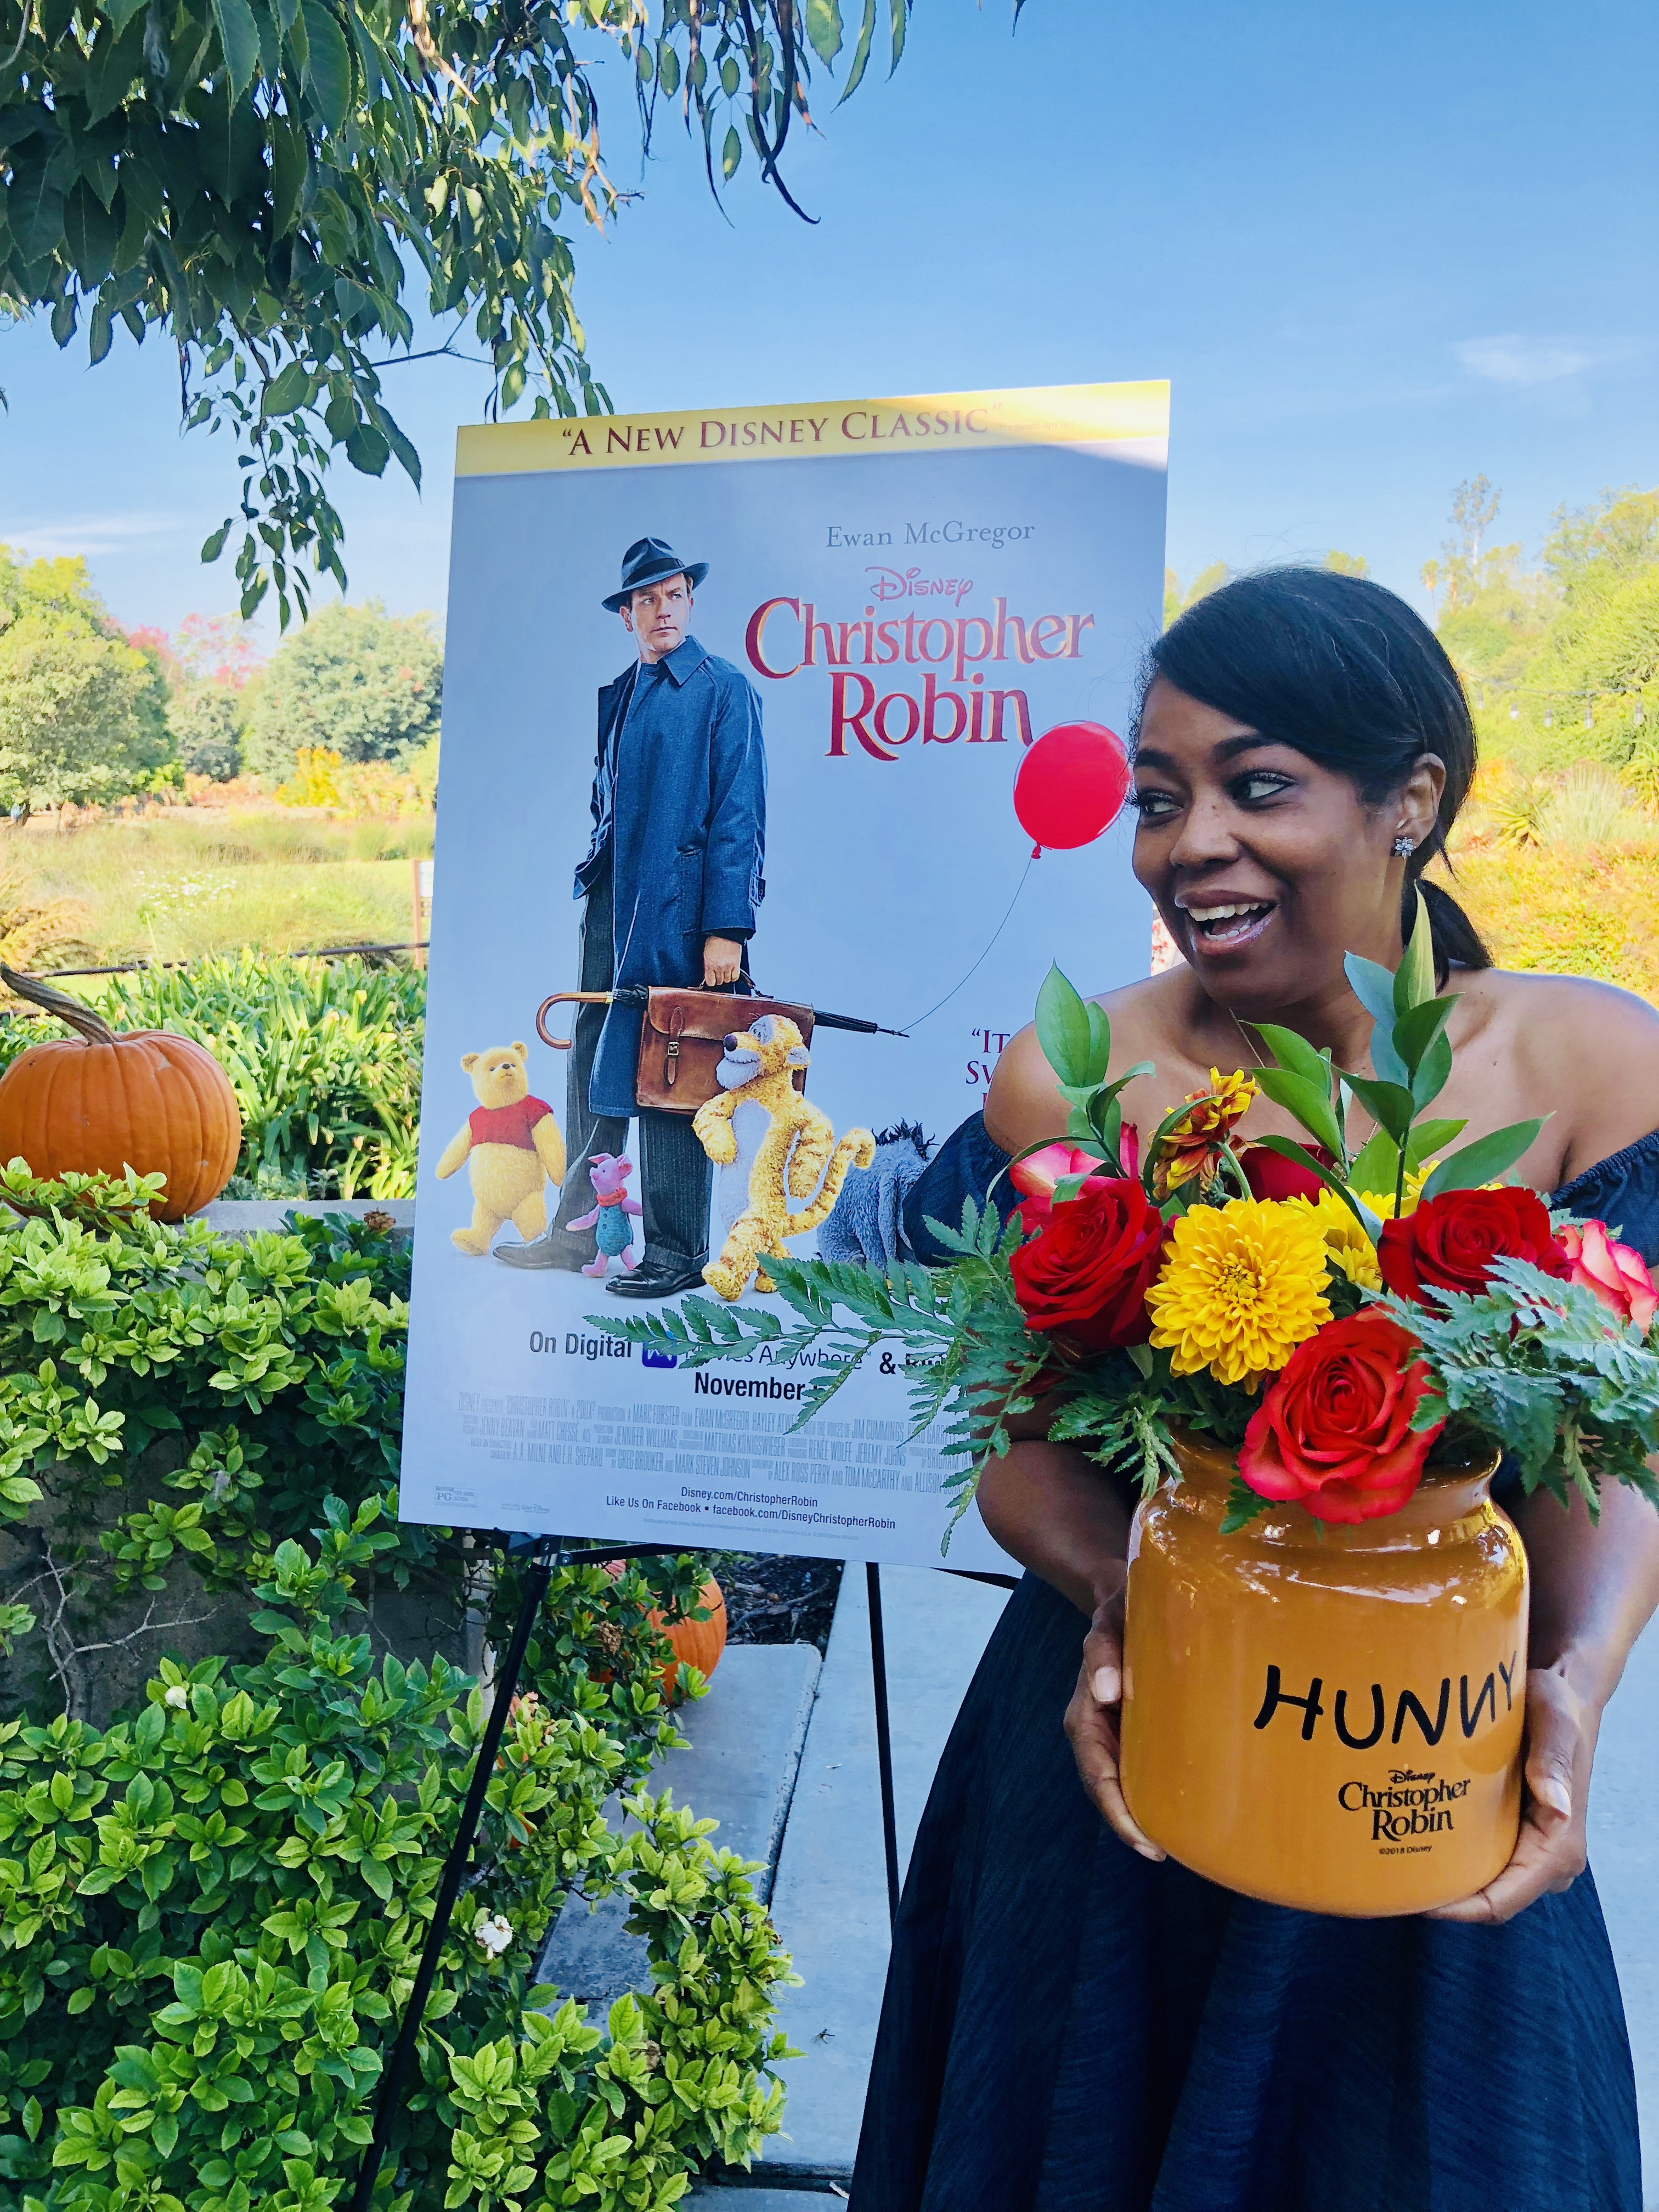 A Floral Arrangement Class & Friendsgiving Luncheon To Celebrate The Digital Release Of Christopher Robin